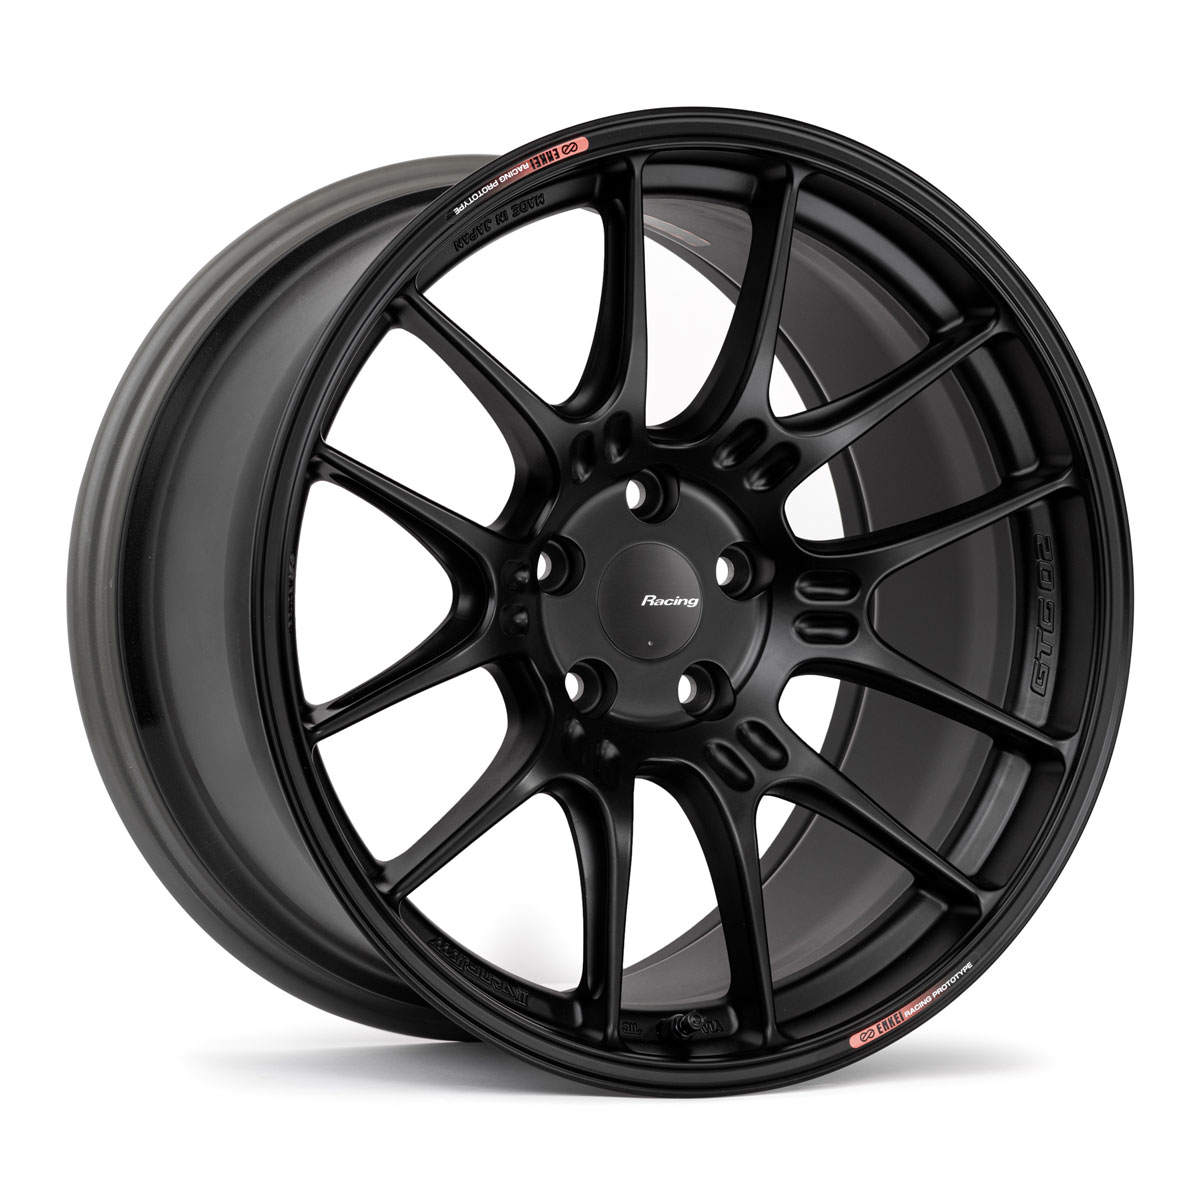 03 Enkei Wheels gtc02 matte black pasmag